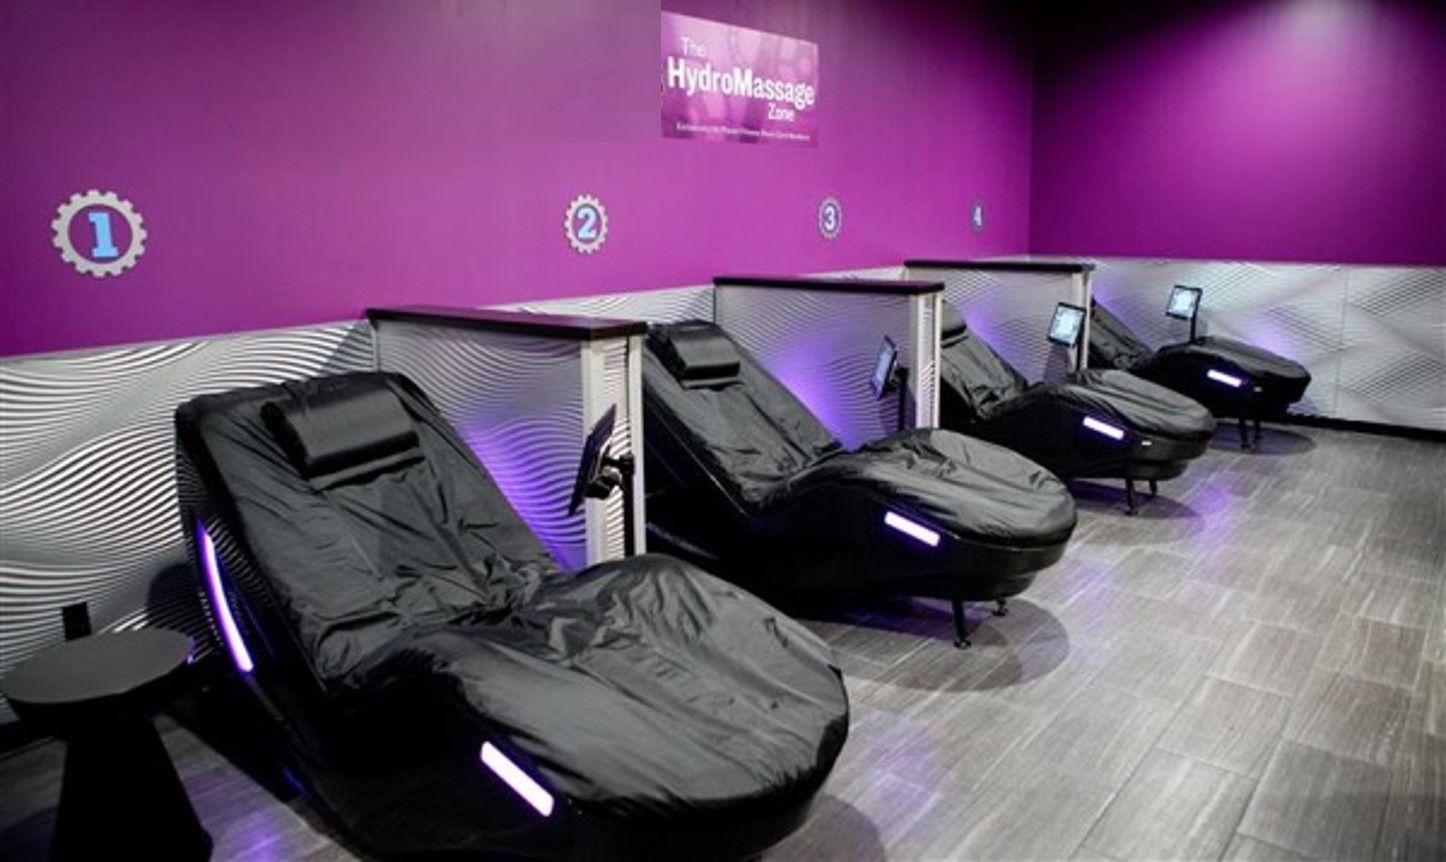 Fitness Club With Four Lounges Planet Fitness Locations Planet Fitness Workout Fitness Club